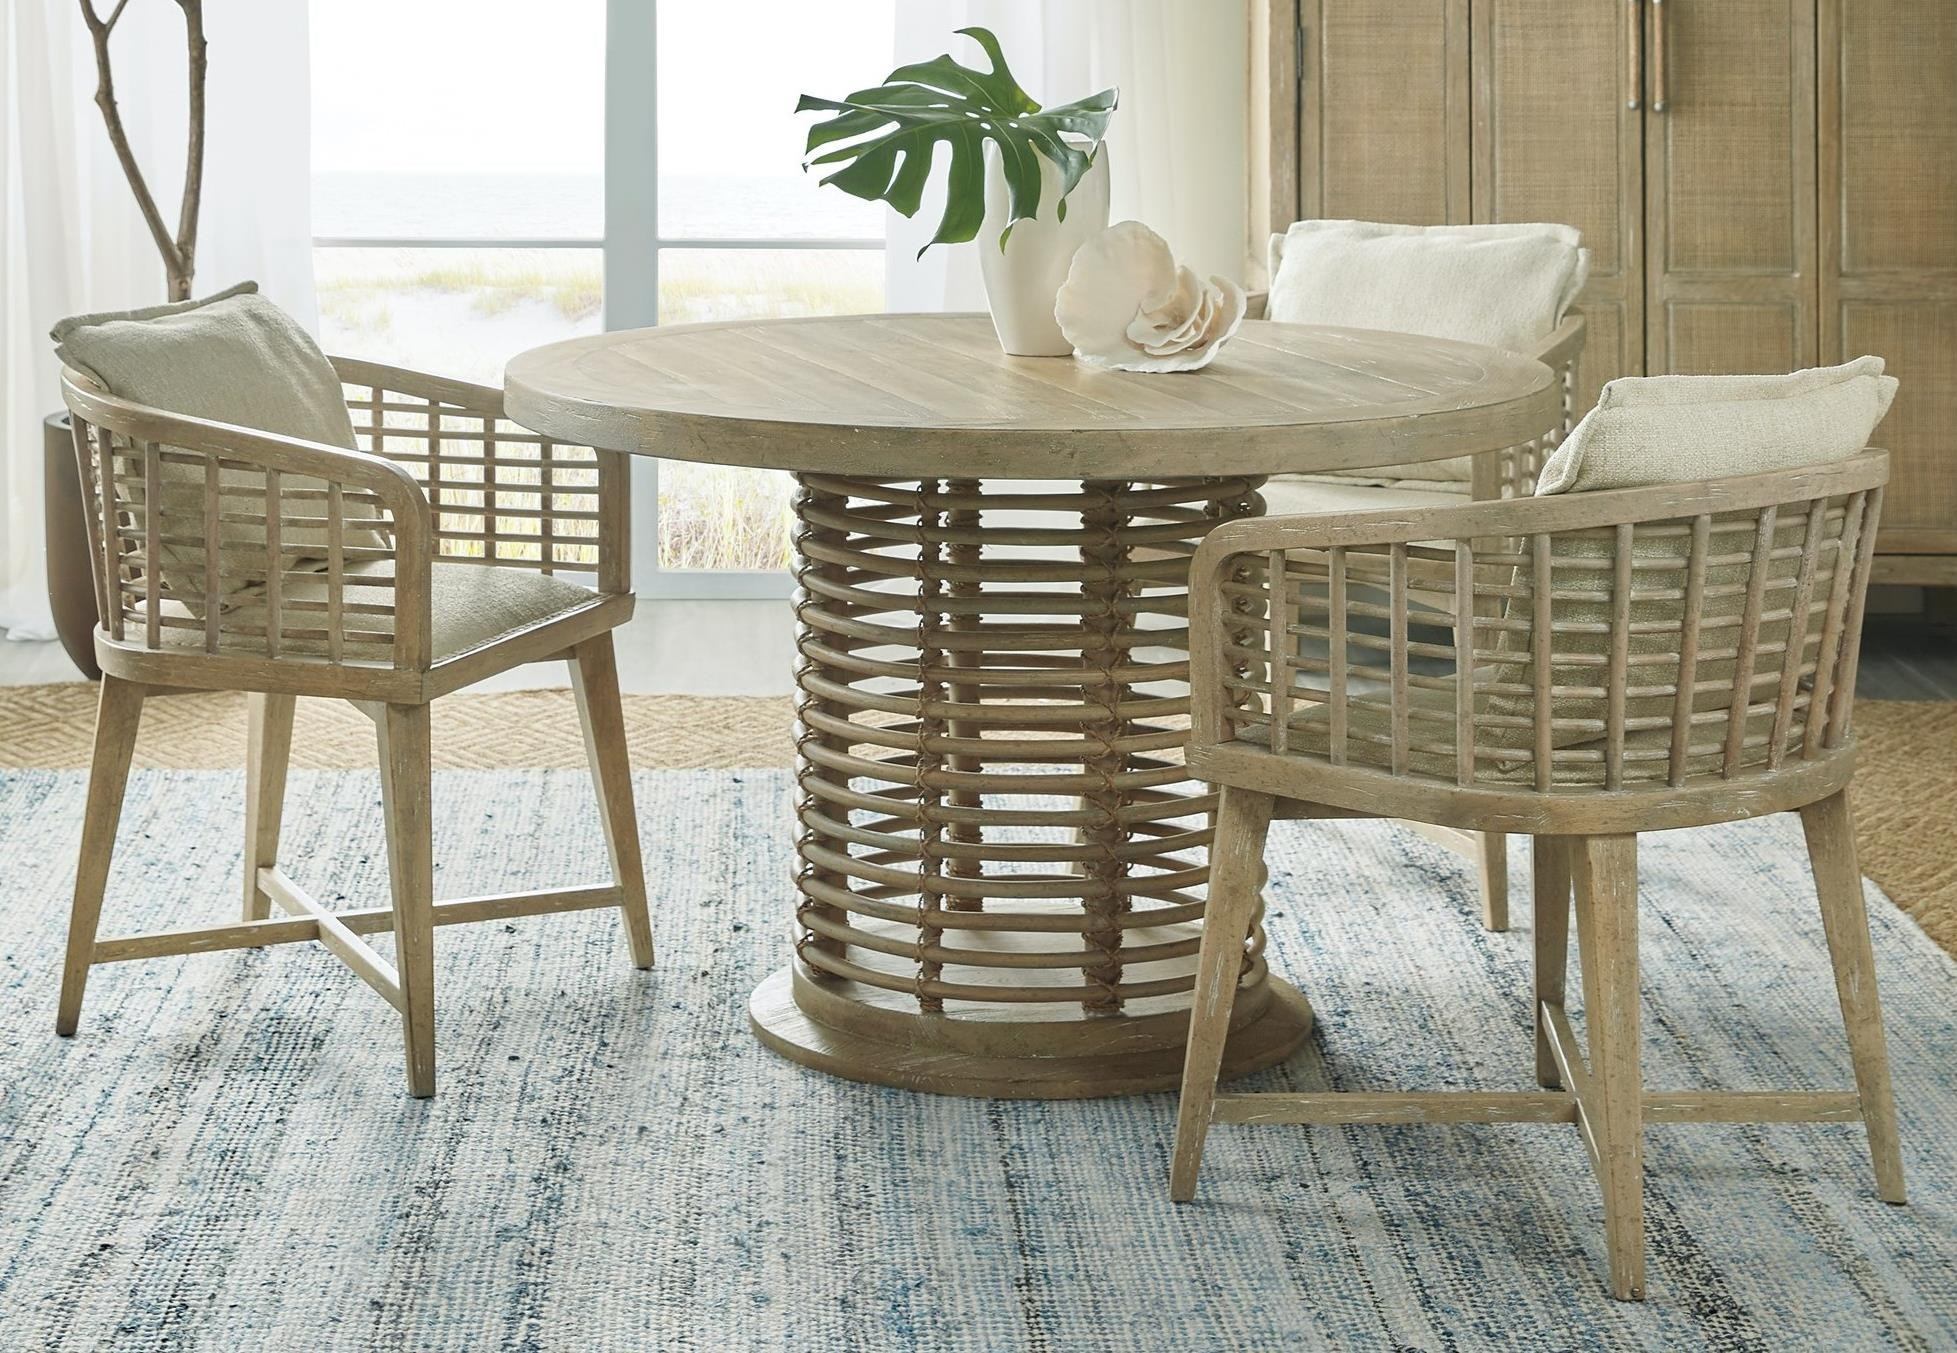 Surfrider 4-Piece Table and Chair Set by Hooker Furniture at Baer's Furniture